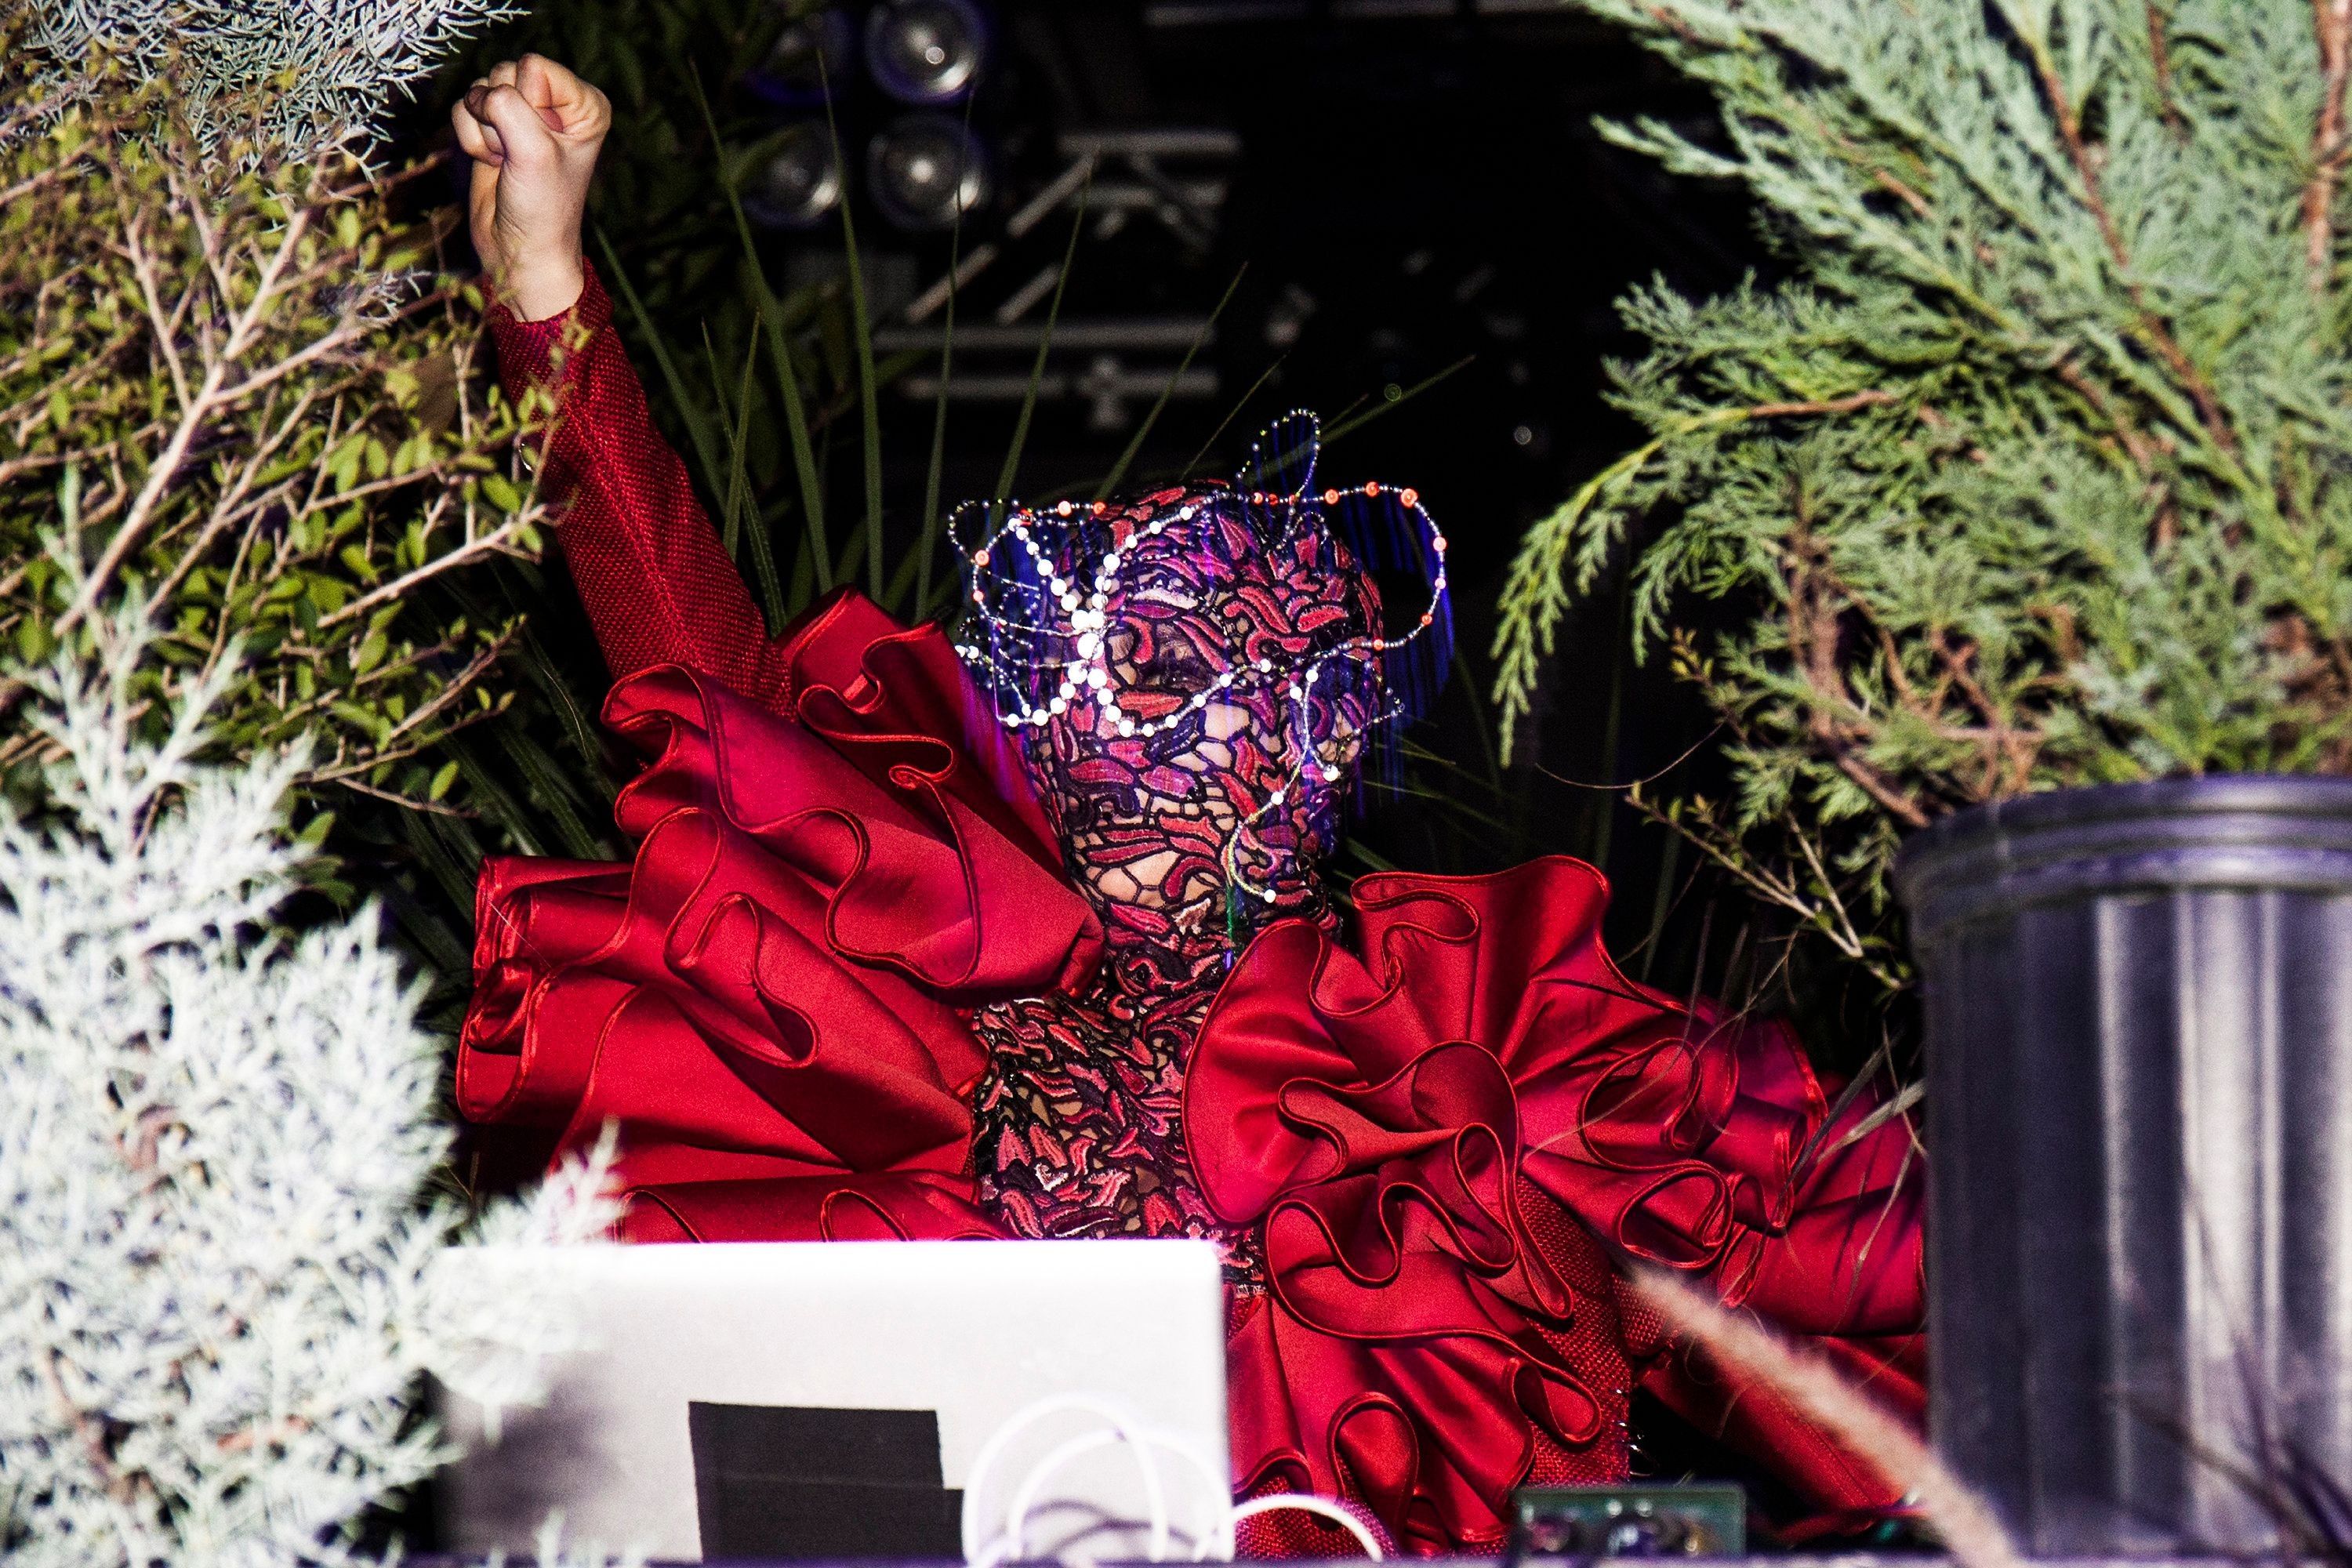 HOUSTON, TX - DECEMBER 18:  Bjork perfoms a DJ set during Day For Night 2016 at Barbara Jordan Post Office on December 18, 2016 in Houston, Texas.  (Photo by Santiago Felipe/Getty Images)